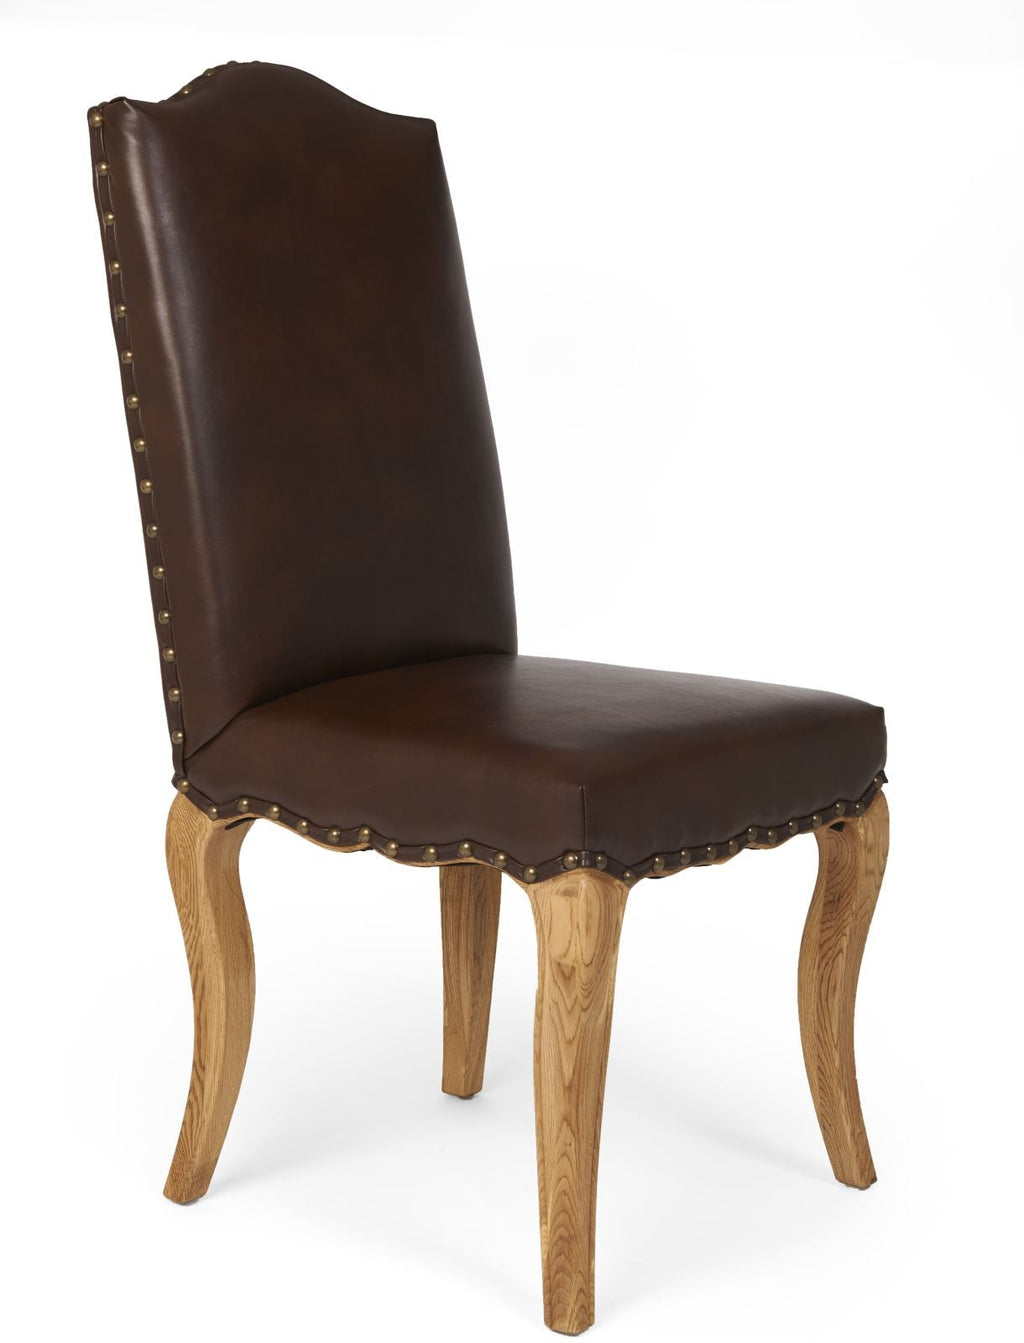 Tuscany Dining Chair -Microfibre